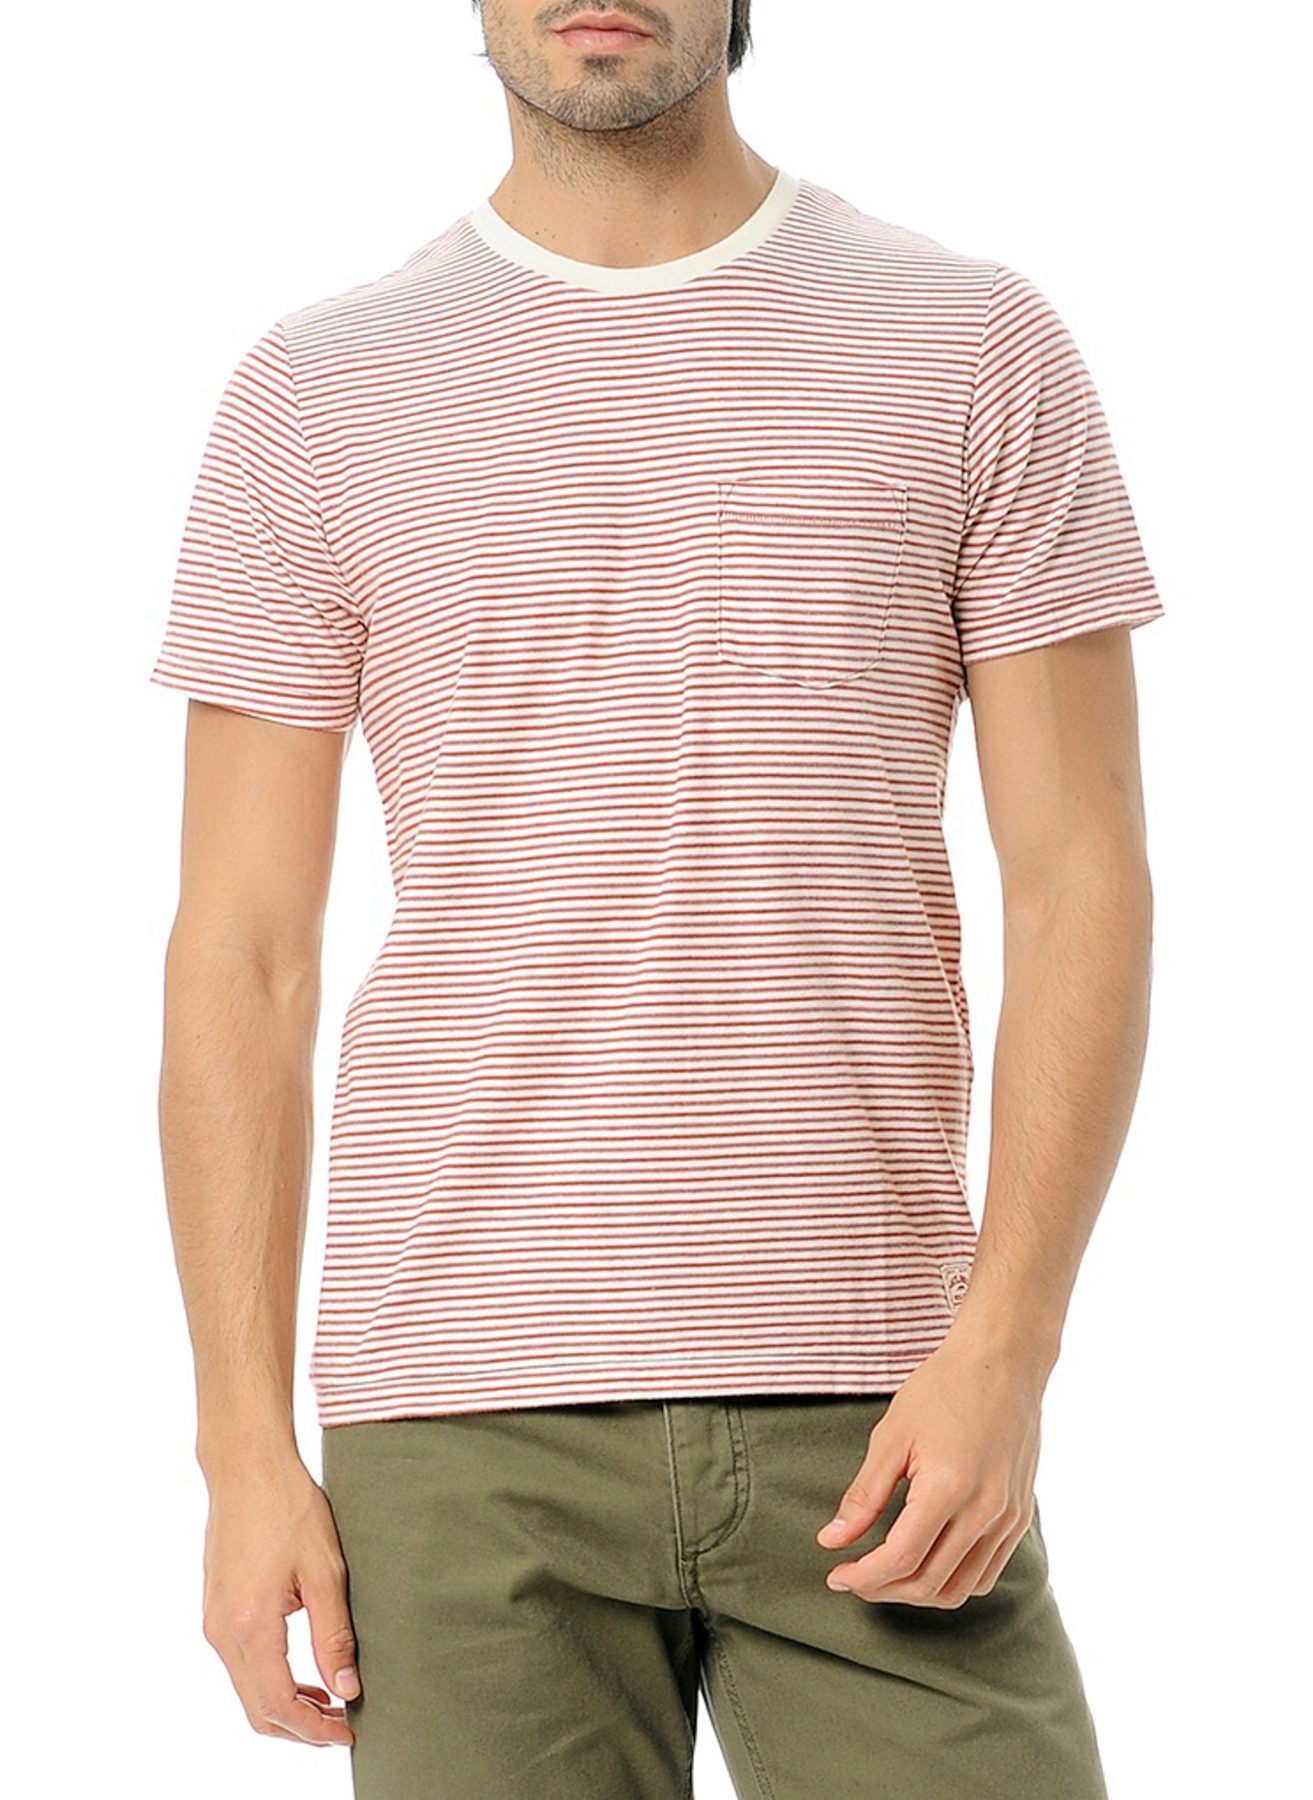 Jack & Jones T-Shirt M 5000121611001 Ürün Resmi